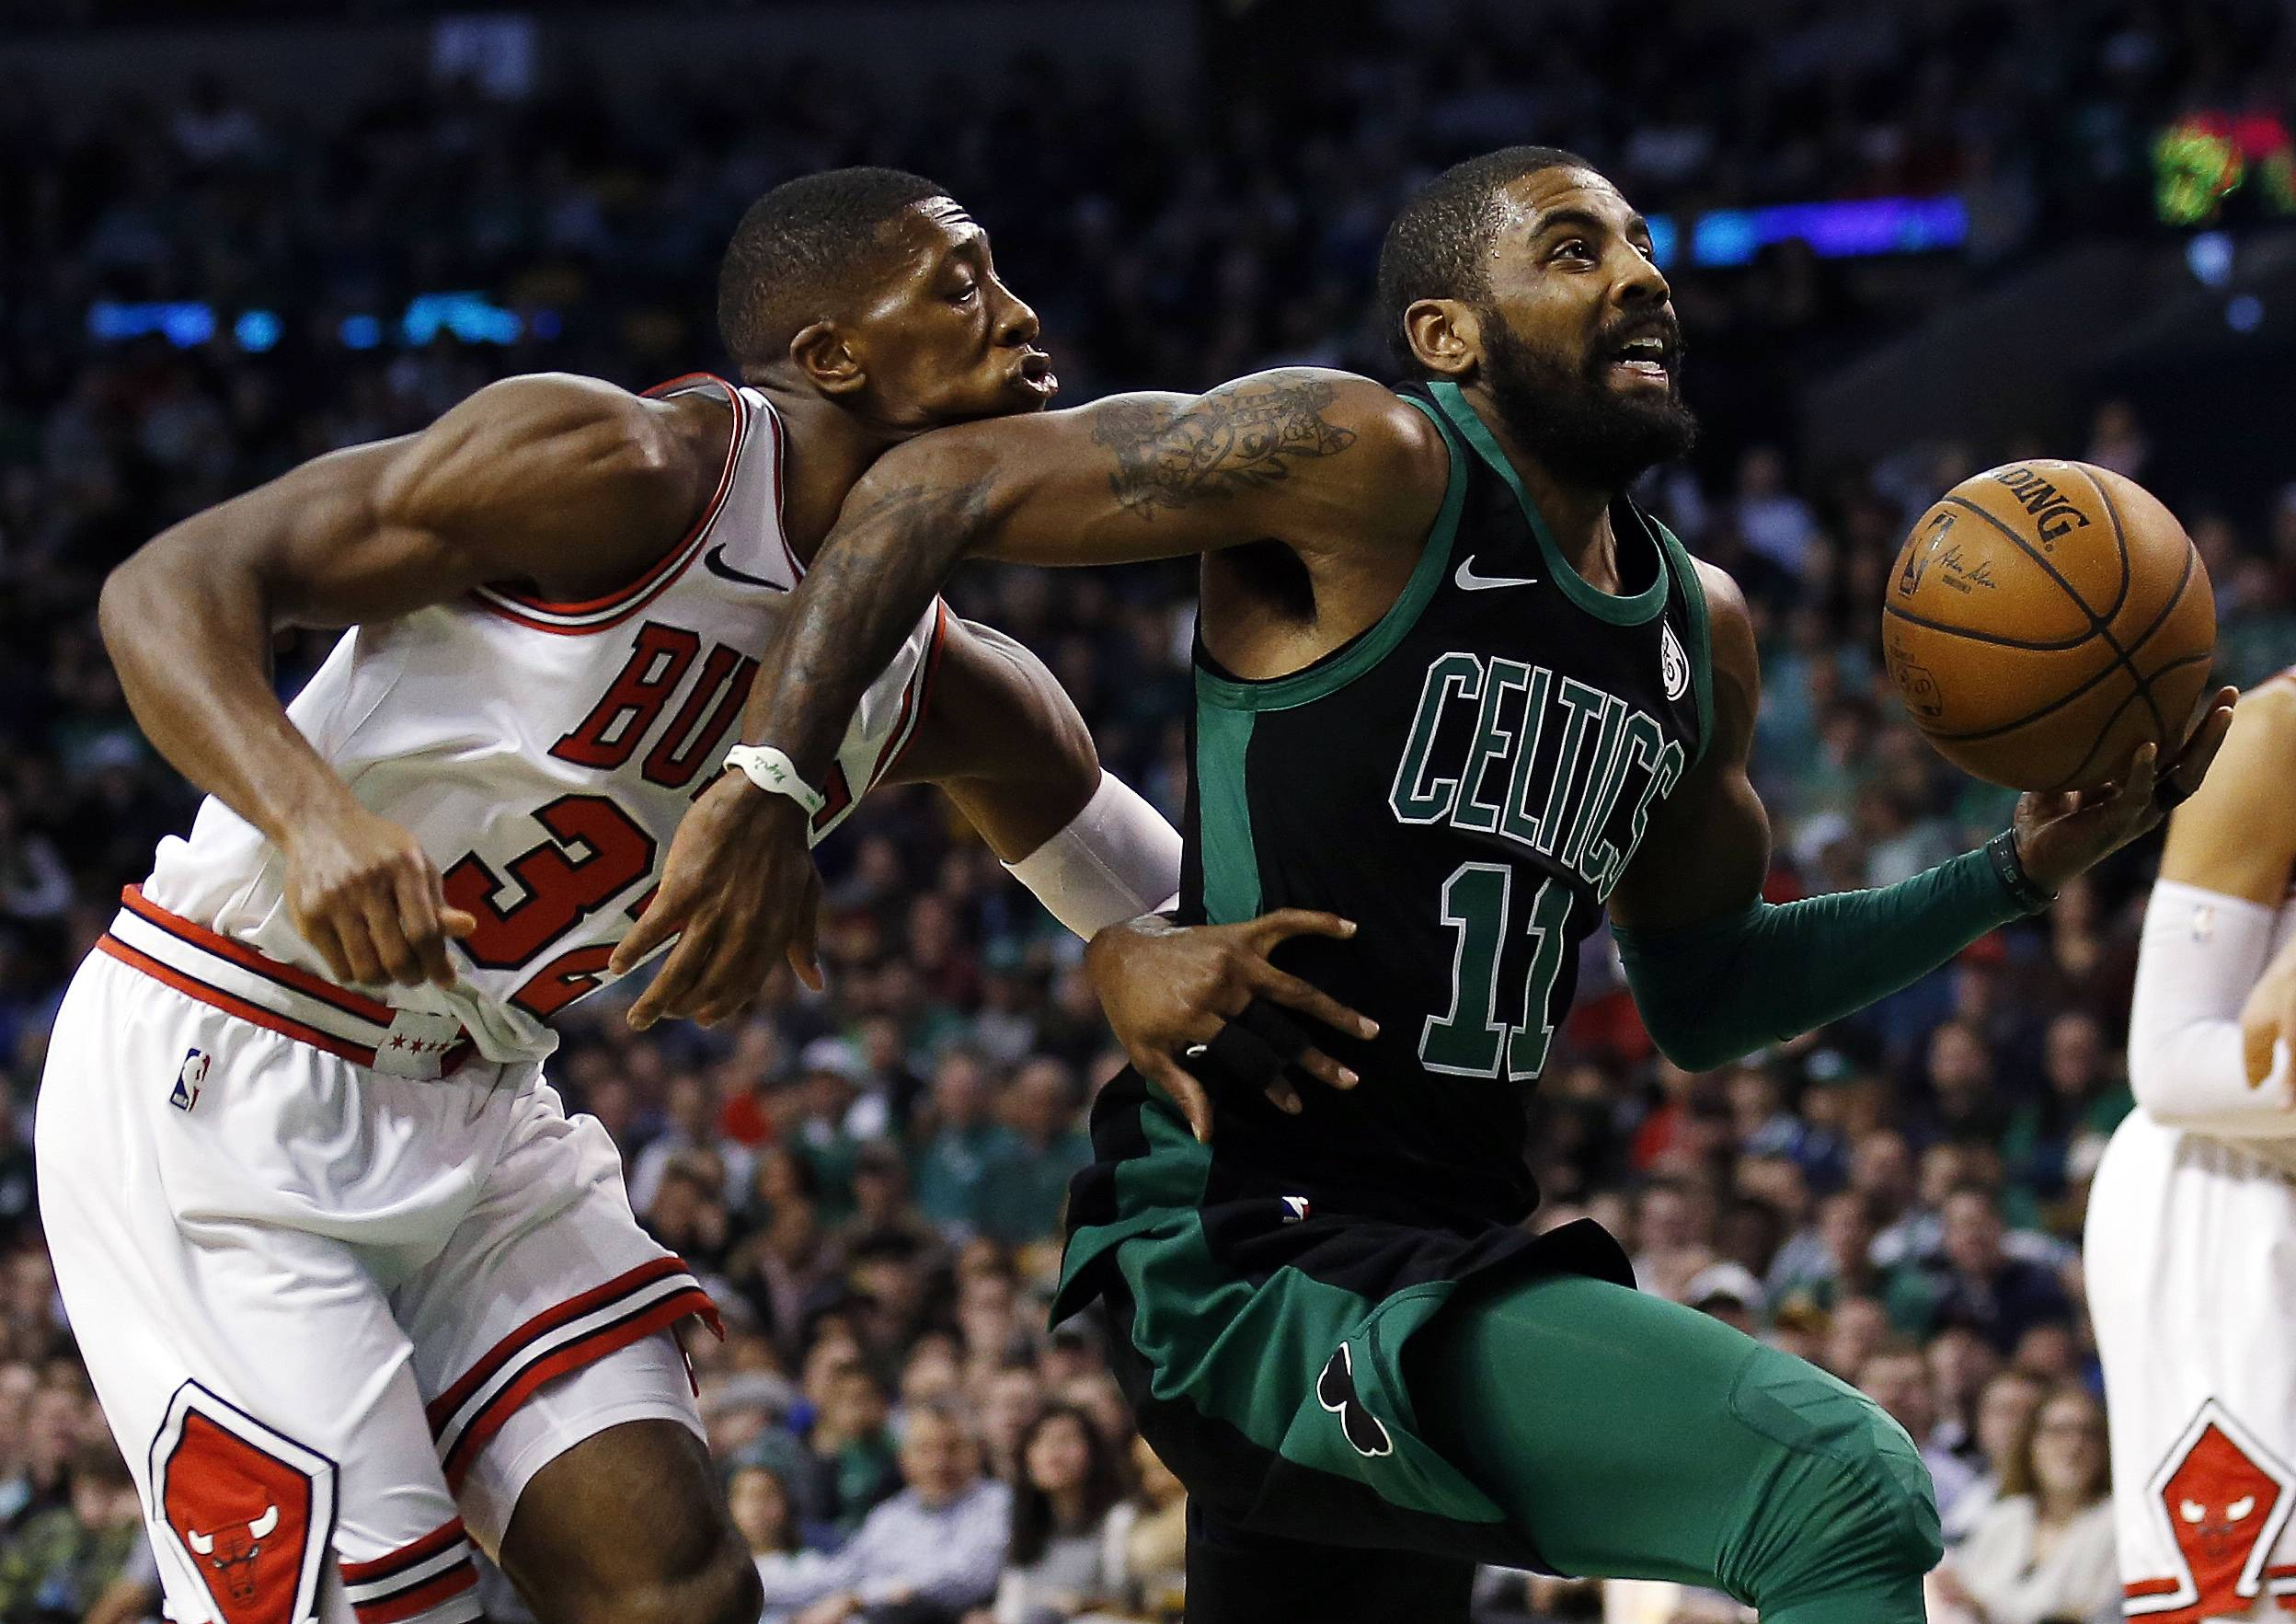 Celtics turn tables, pull away in third quarter to beat Bulls